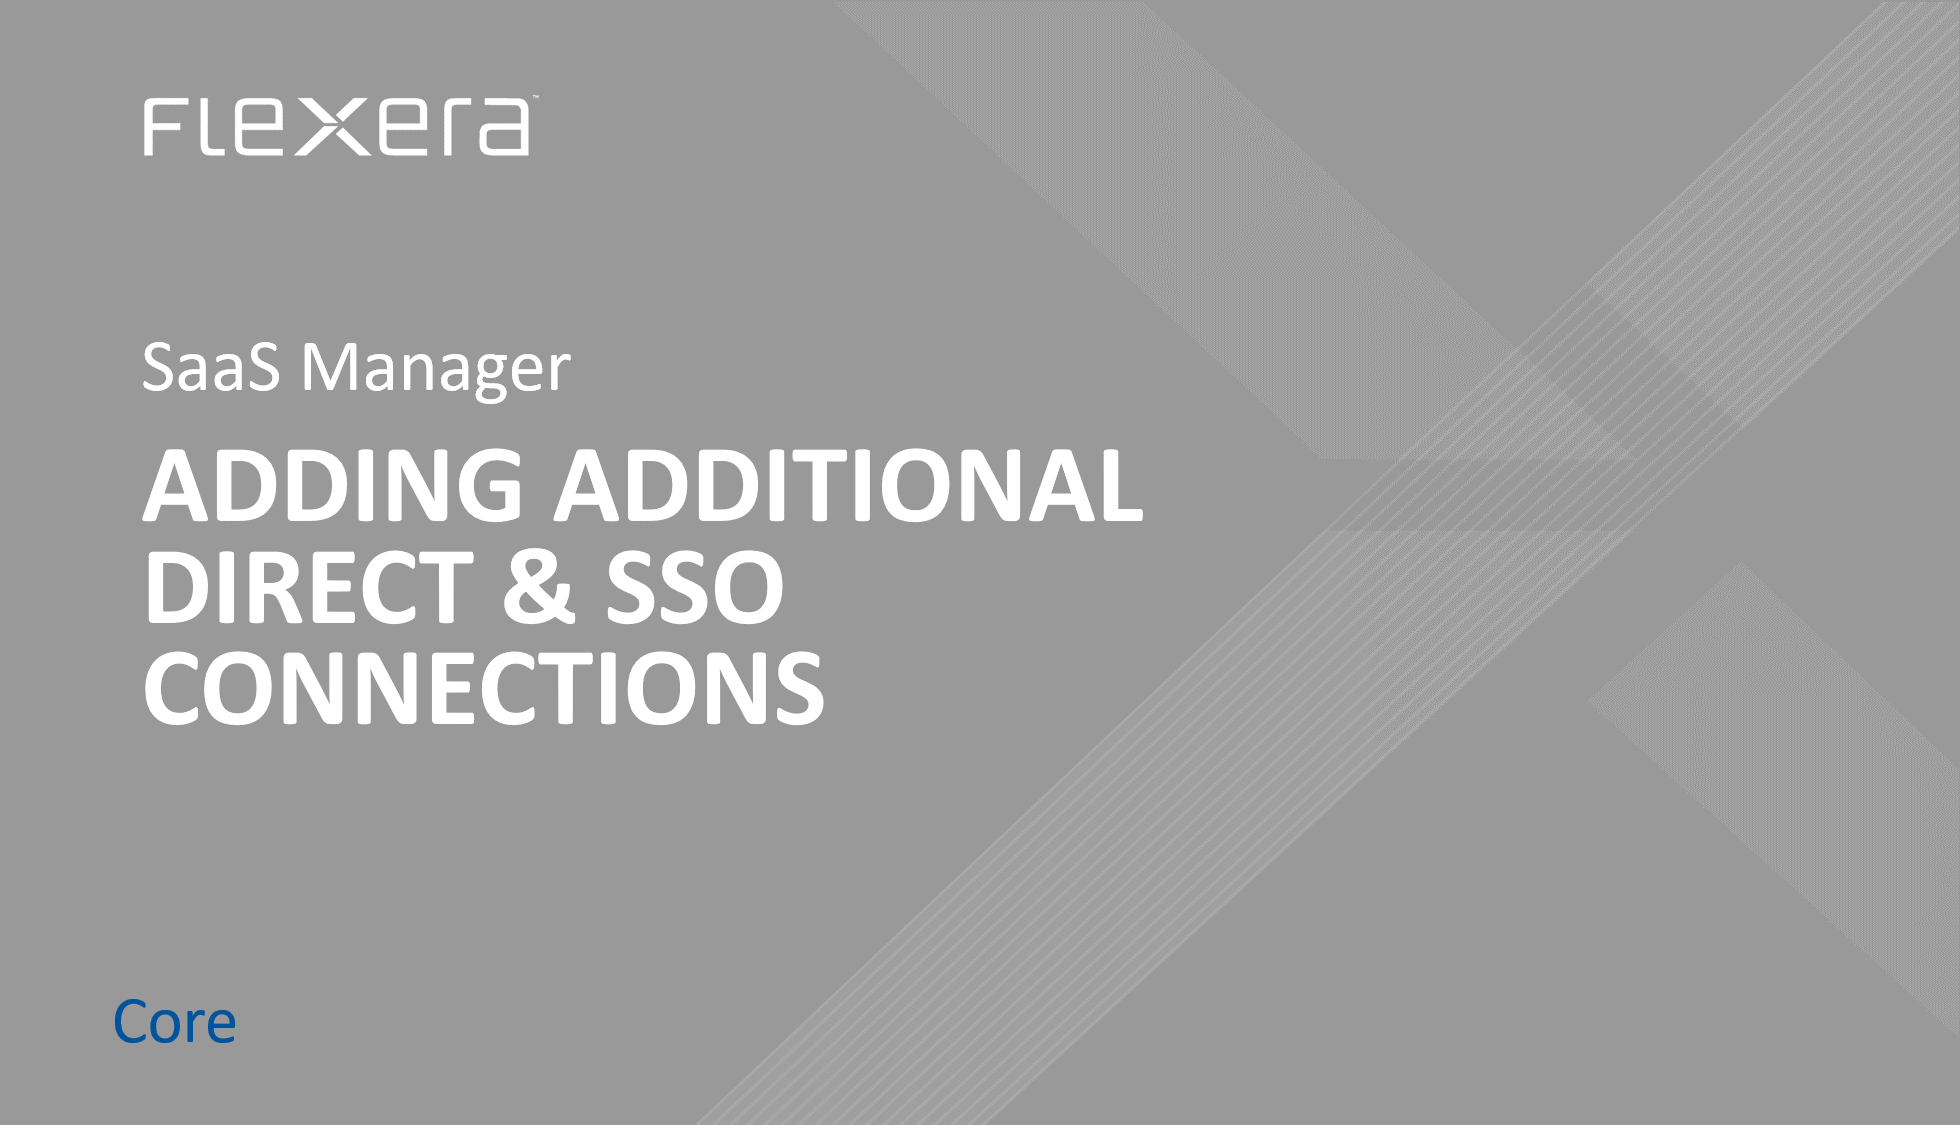 Adding Additional Direct & SSO Connections to Flexera SaaS Manager